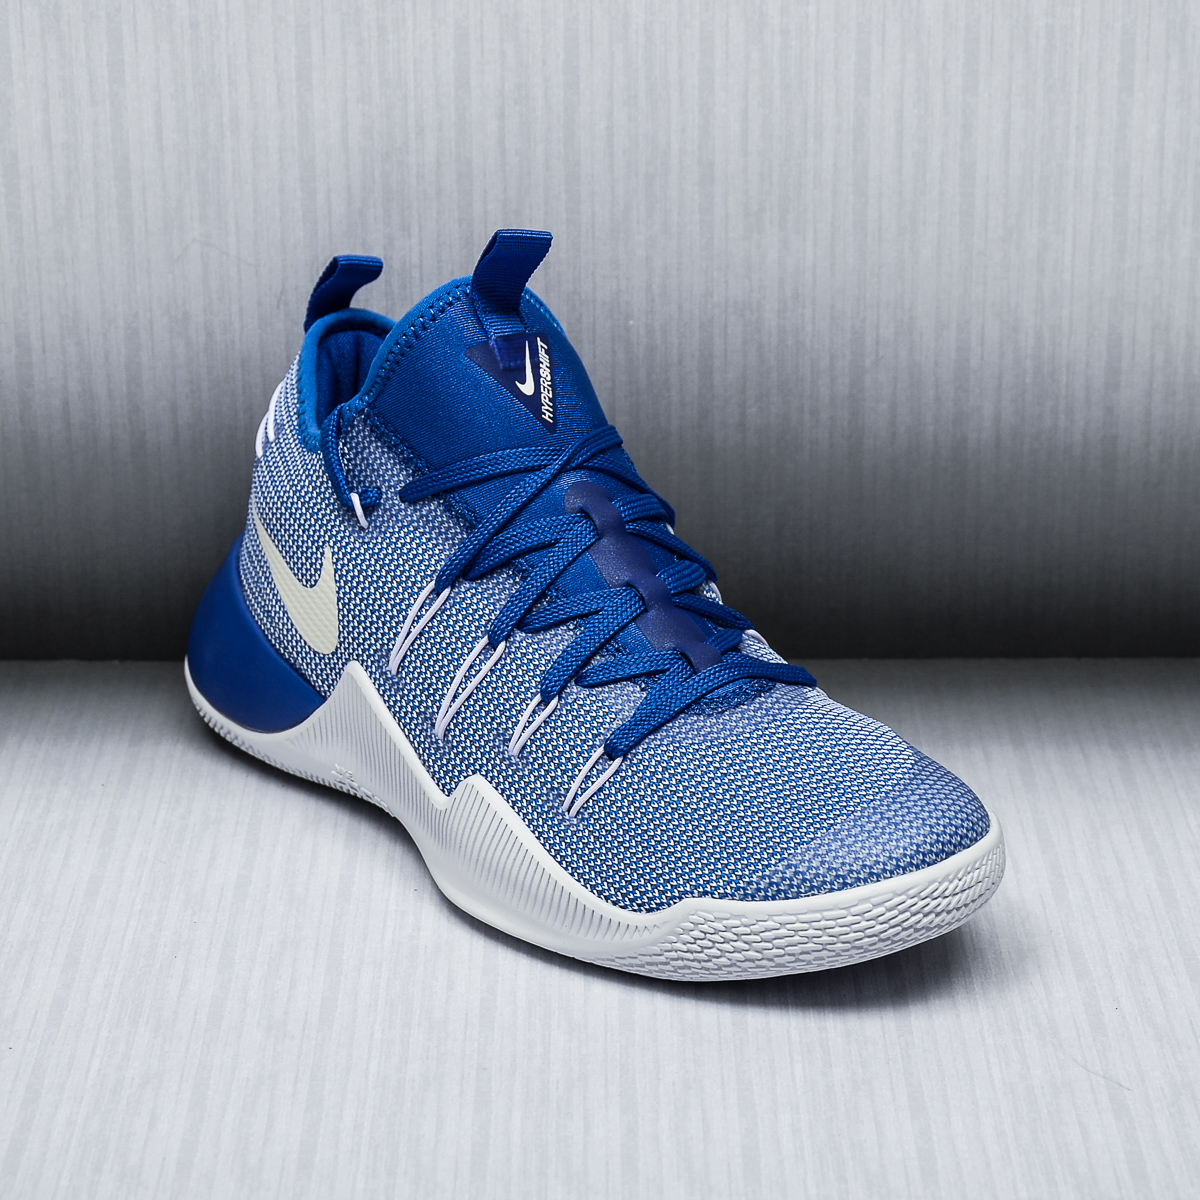 pretty nice d8a90 d43a6 ... Nike Hypershift TB Basketball Shoes . ...